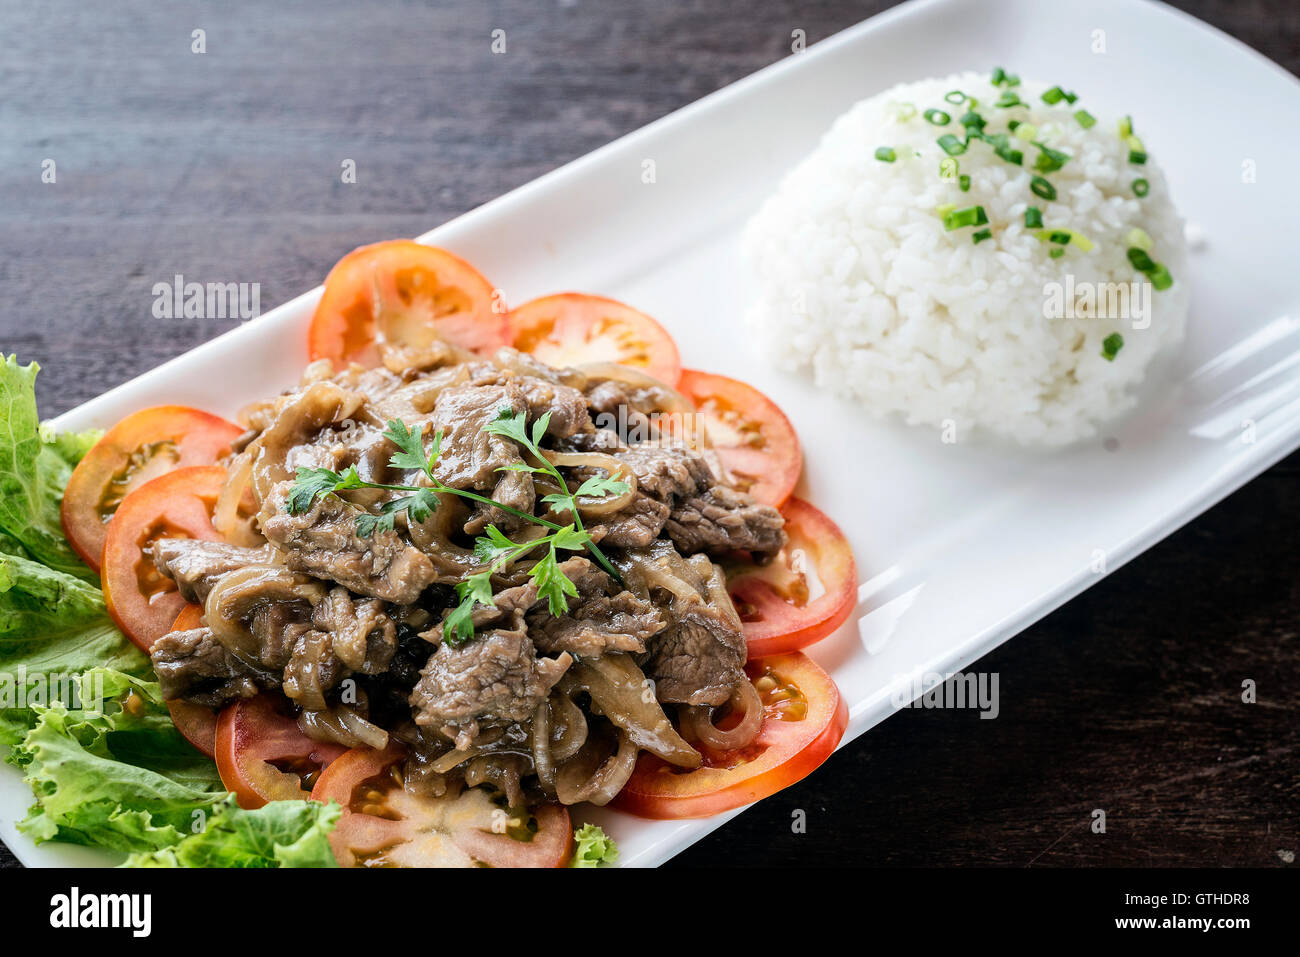 Khmer food stock photos khmer food stock images alamy cambodian fried beef lok lak traditional khmer food stock image forumfinder Images